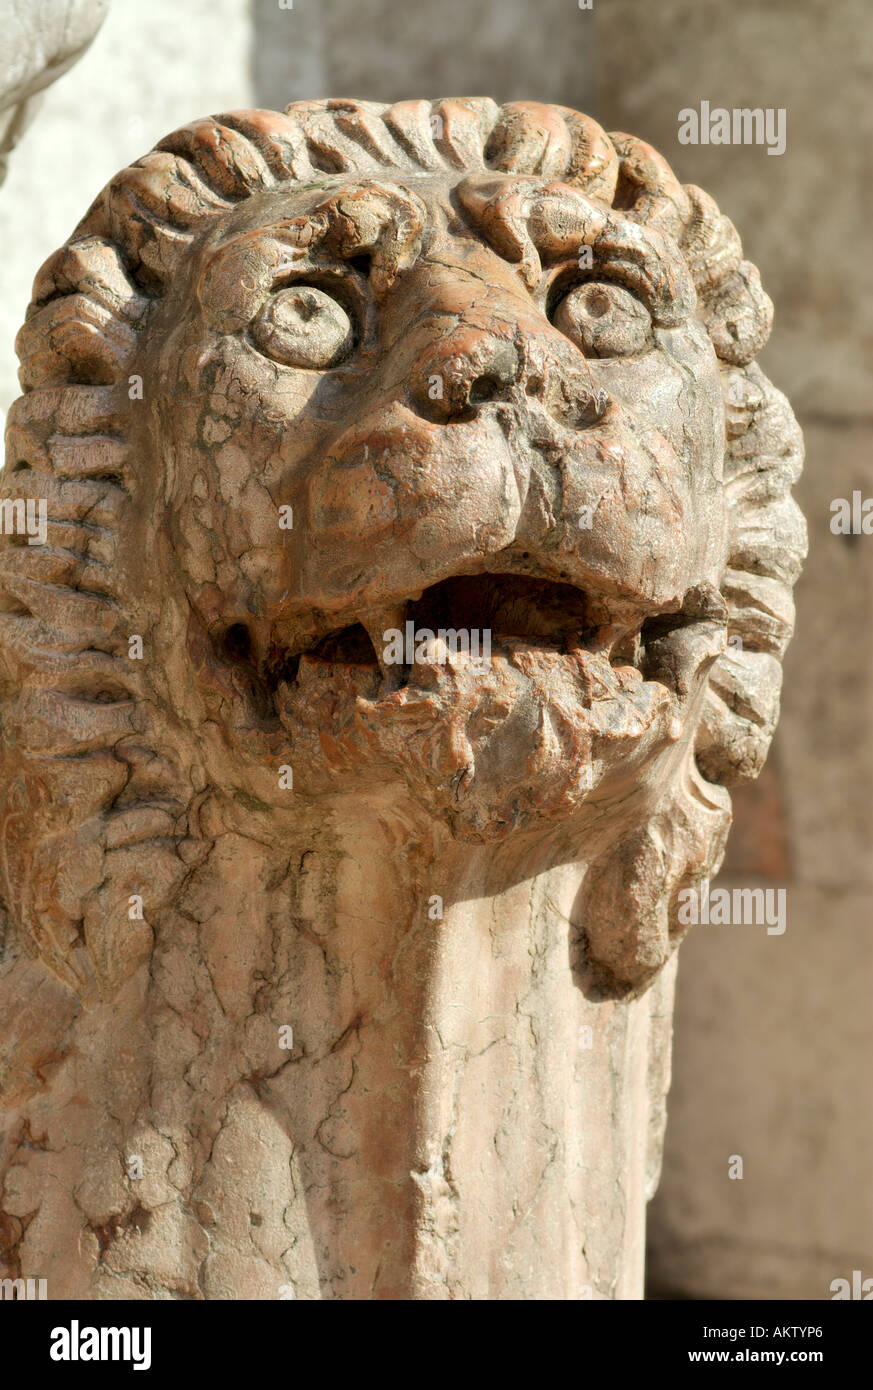 Ferrara Italy Marble sculpture of a lion outside the Duomo Stock Photo